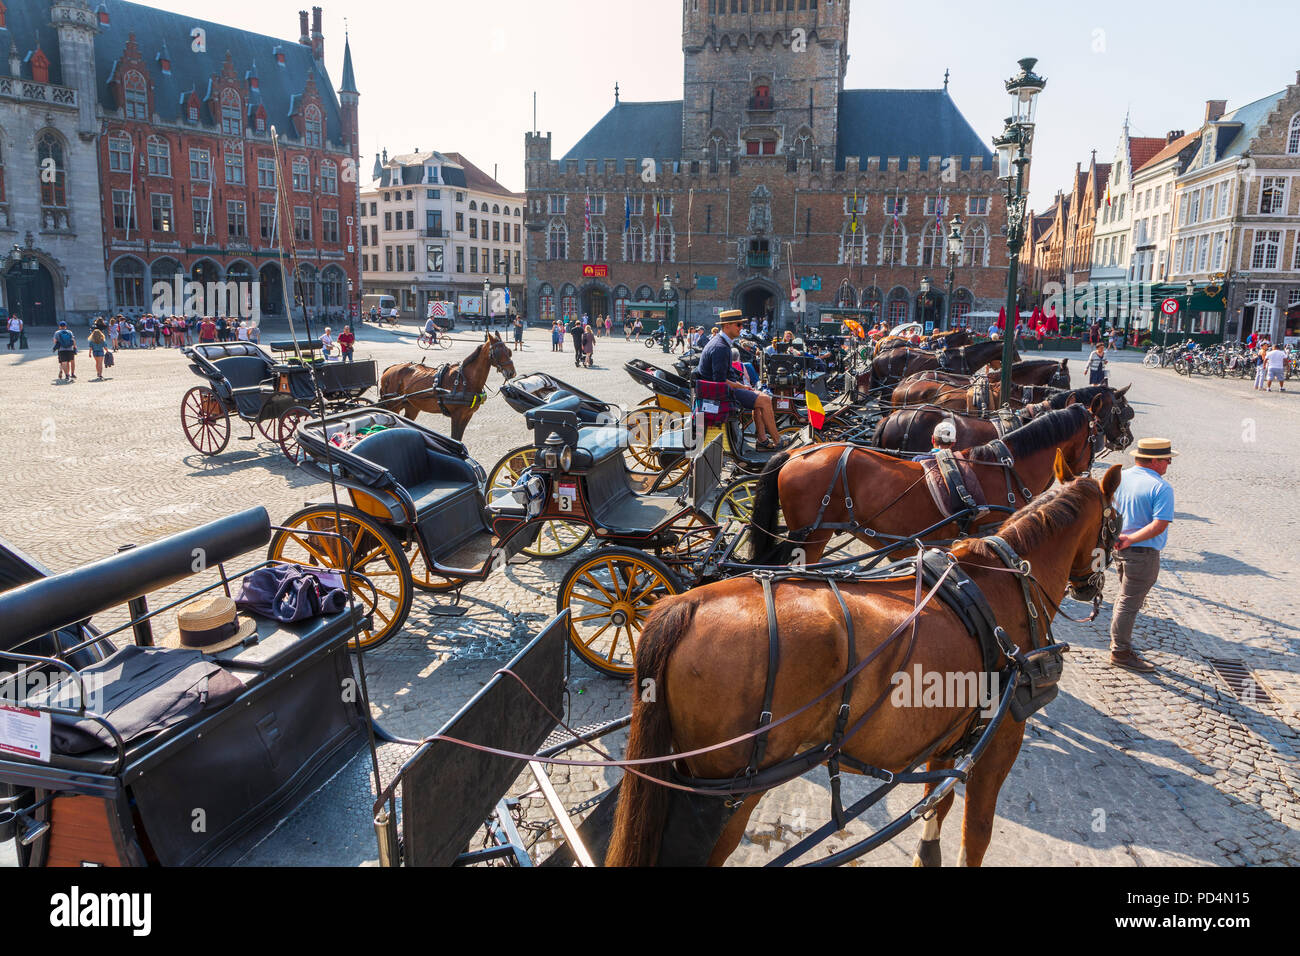 Horse and traps lined up in Markt Square near Bruges Belfry Bruges, Belgium. The horse and traps are used to take tourists on city tours - Stock Image